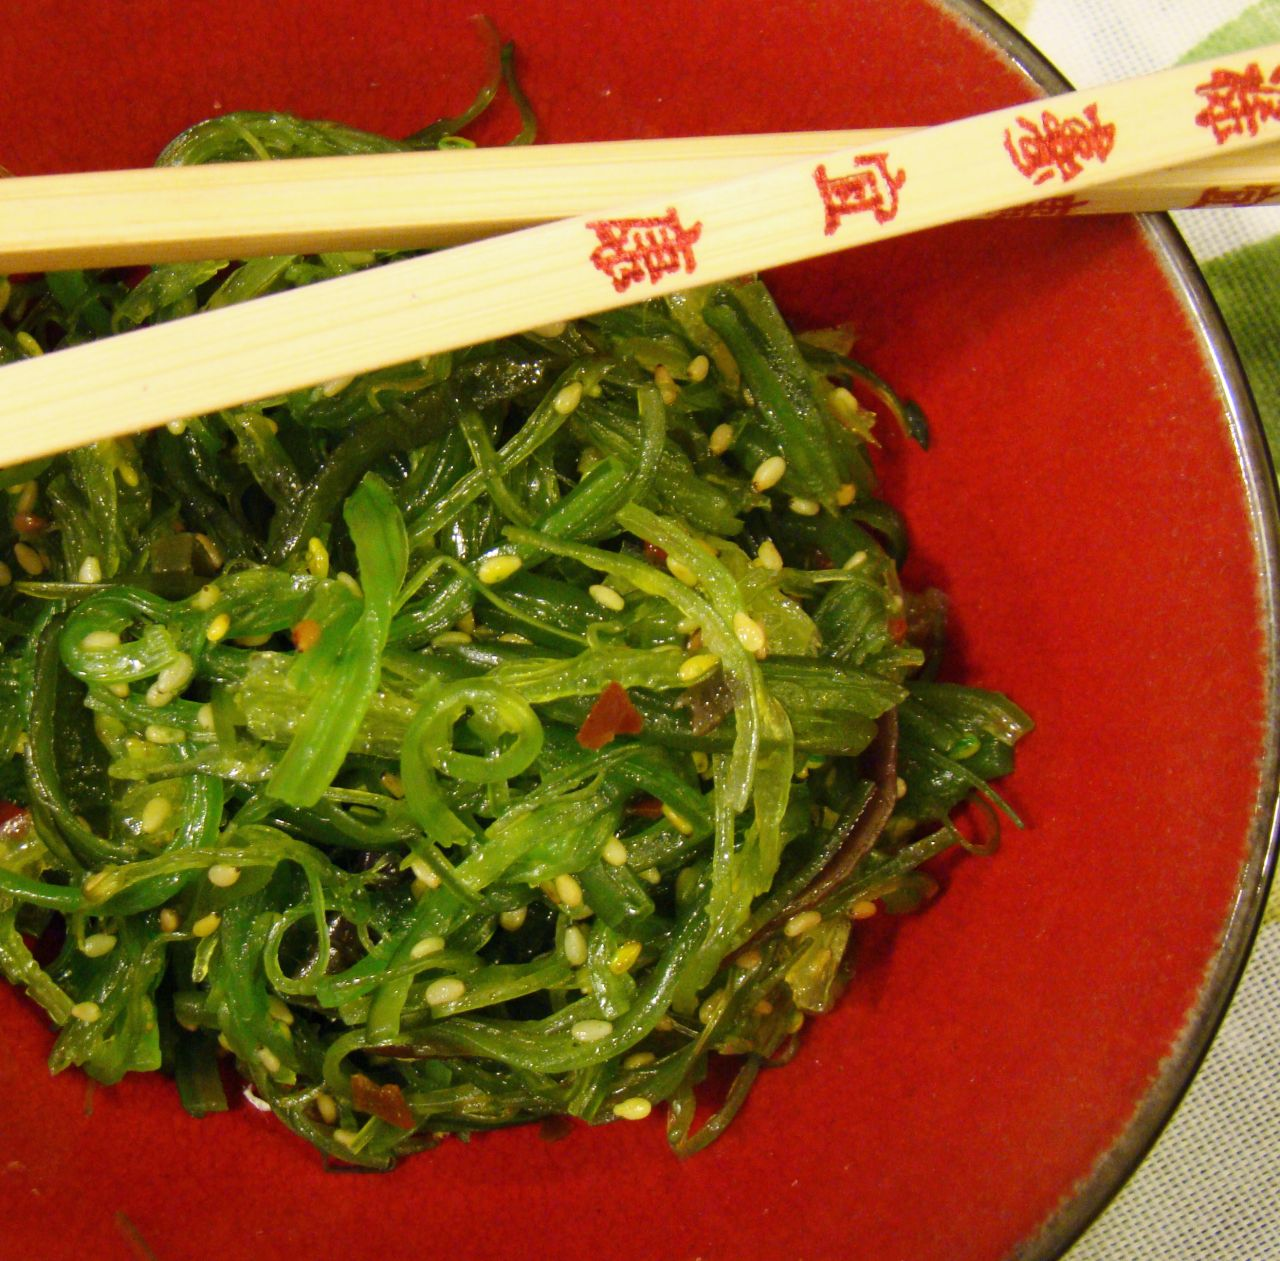 Seaweed salad has been part of the Chinese diet for hundreds of years.